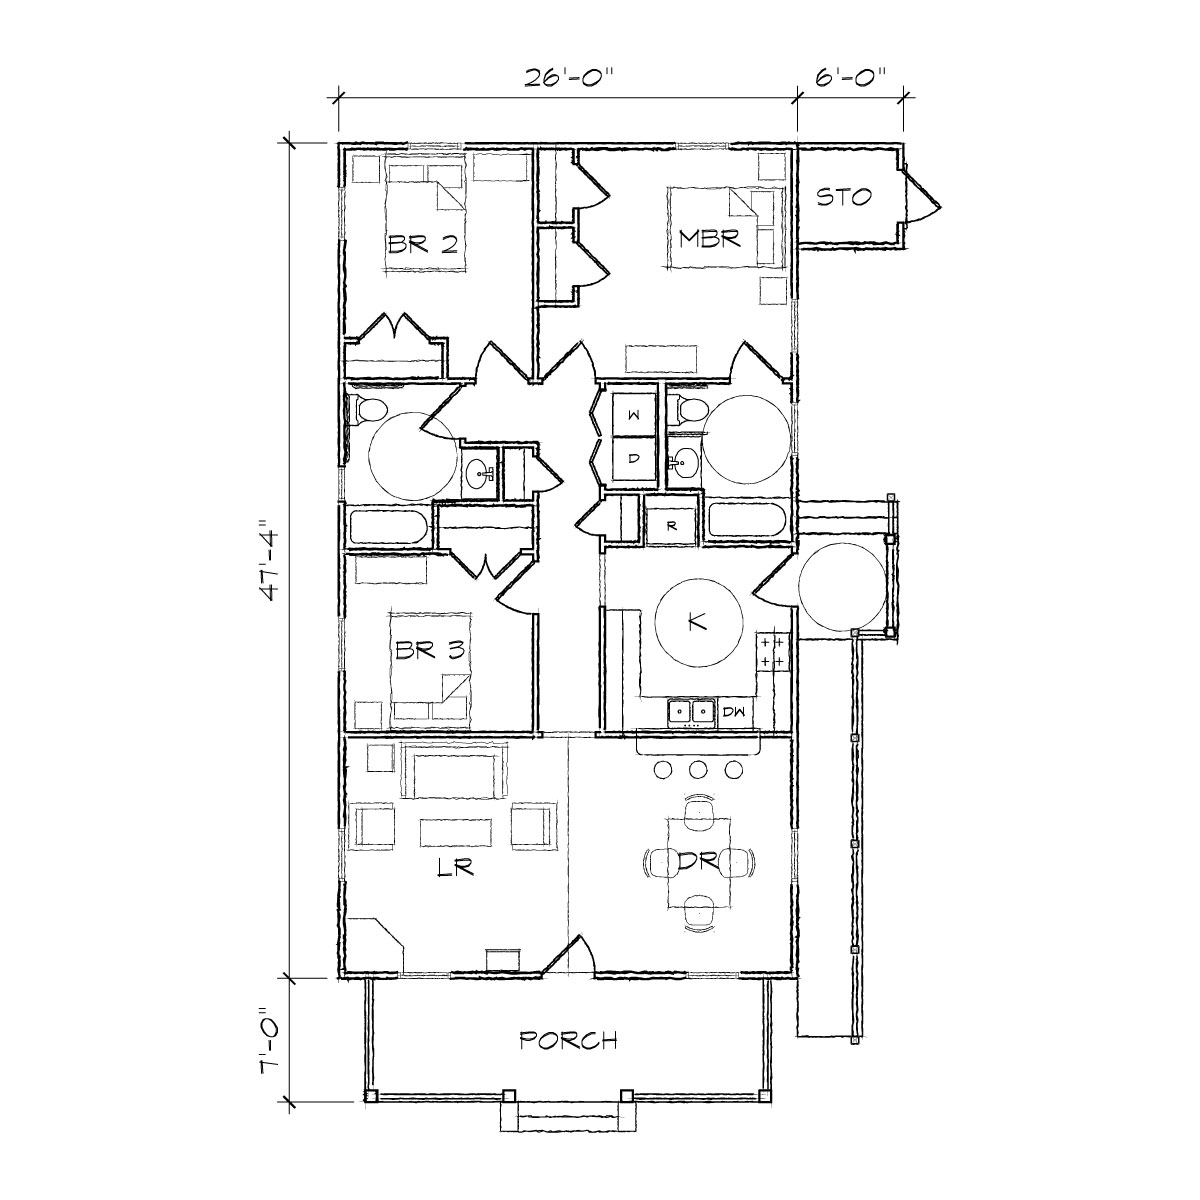 2 bedroom bungalow plans bungalow floor plan floor plan for Bungalow style home plans